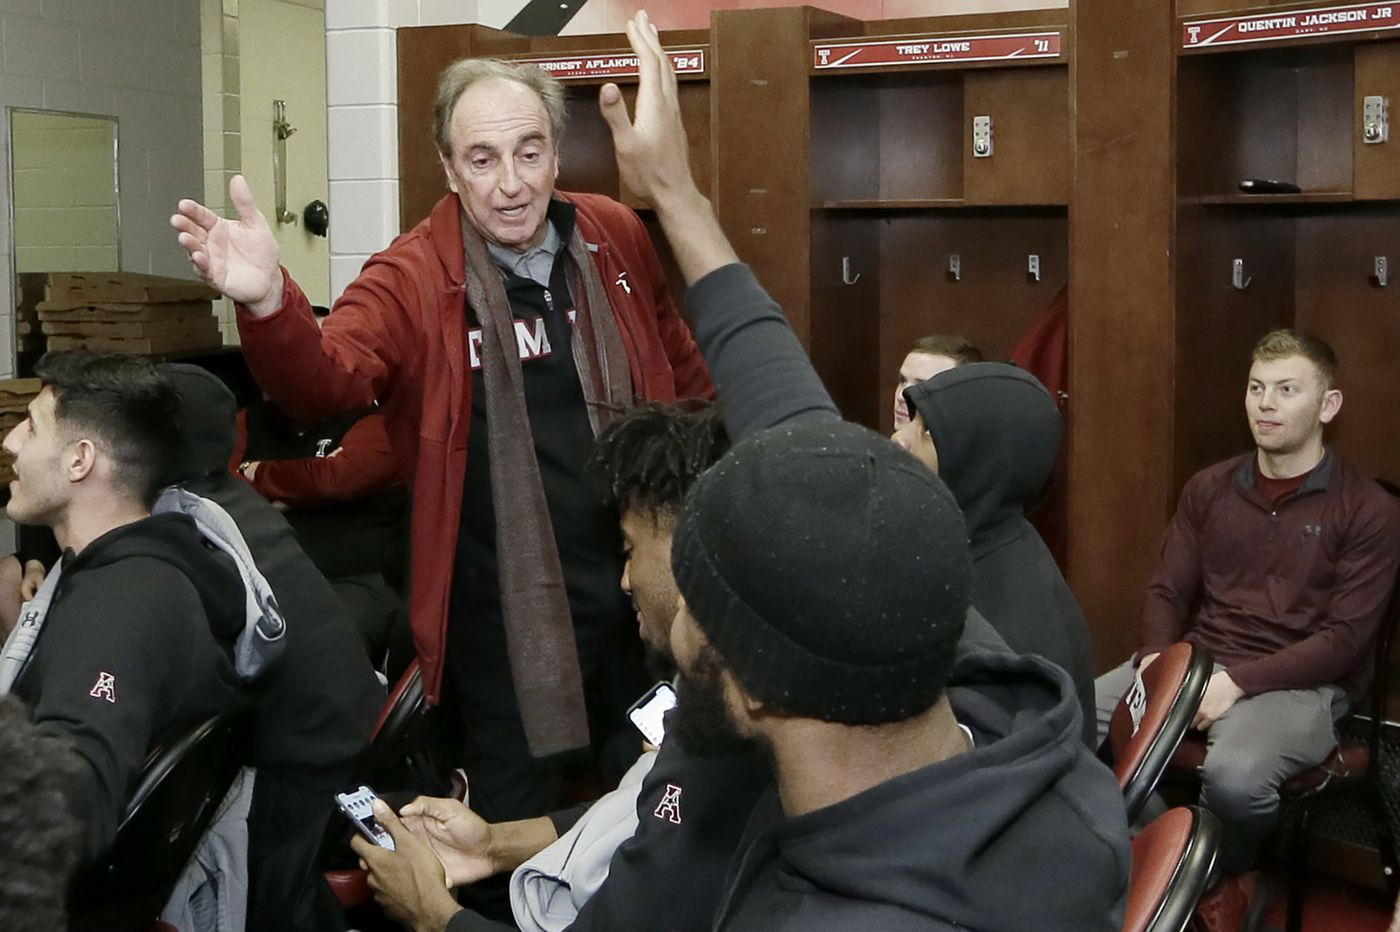 Temple basketball alum: Fran Dunphy's got more coaching left in him | Opinion